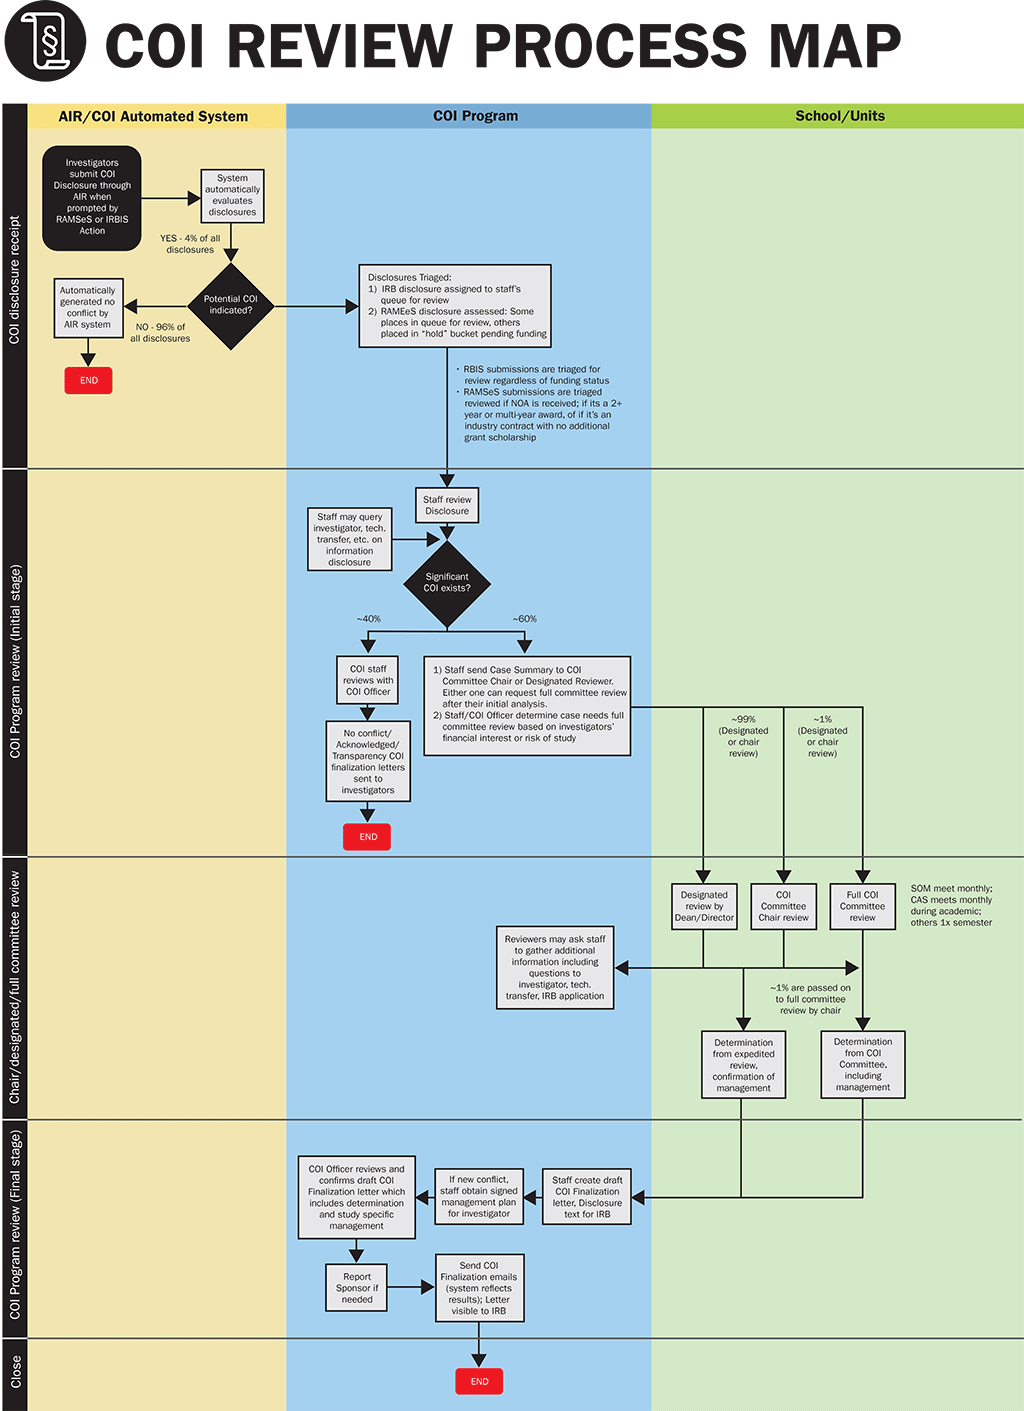 COI Review Process Map Image